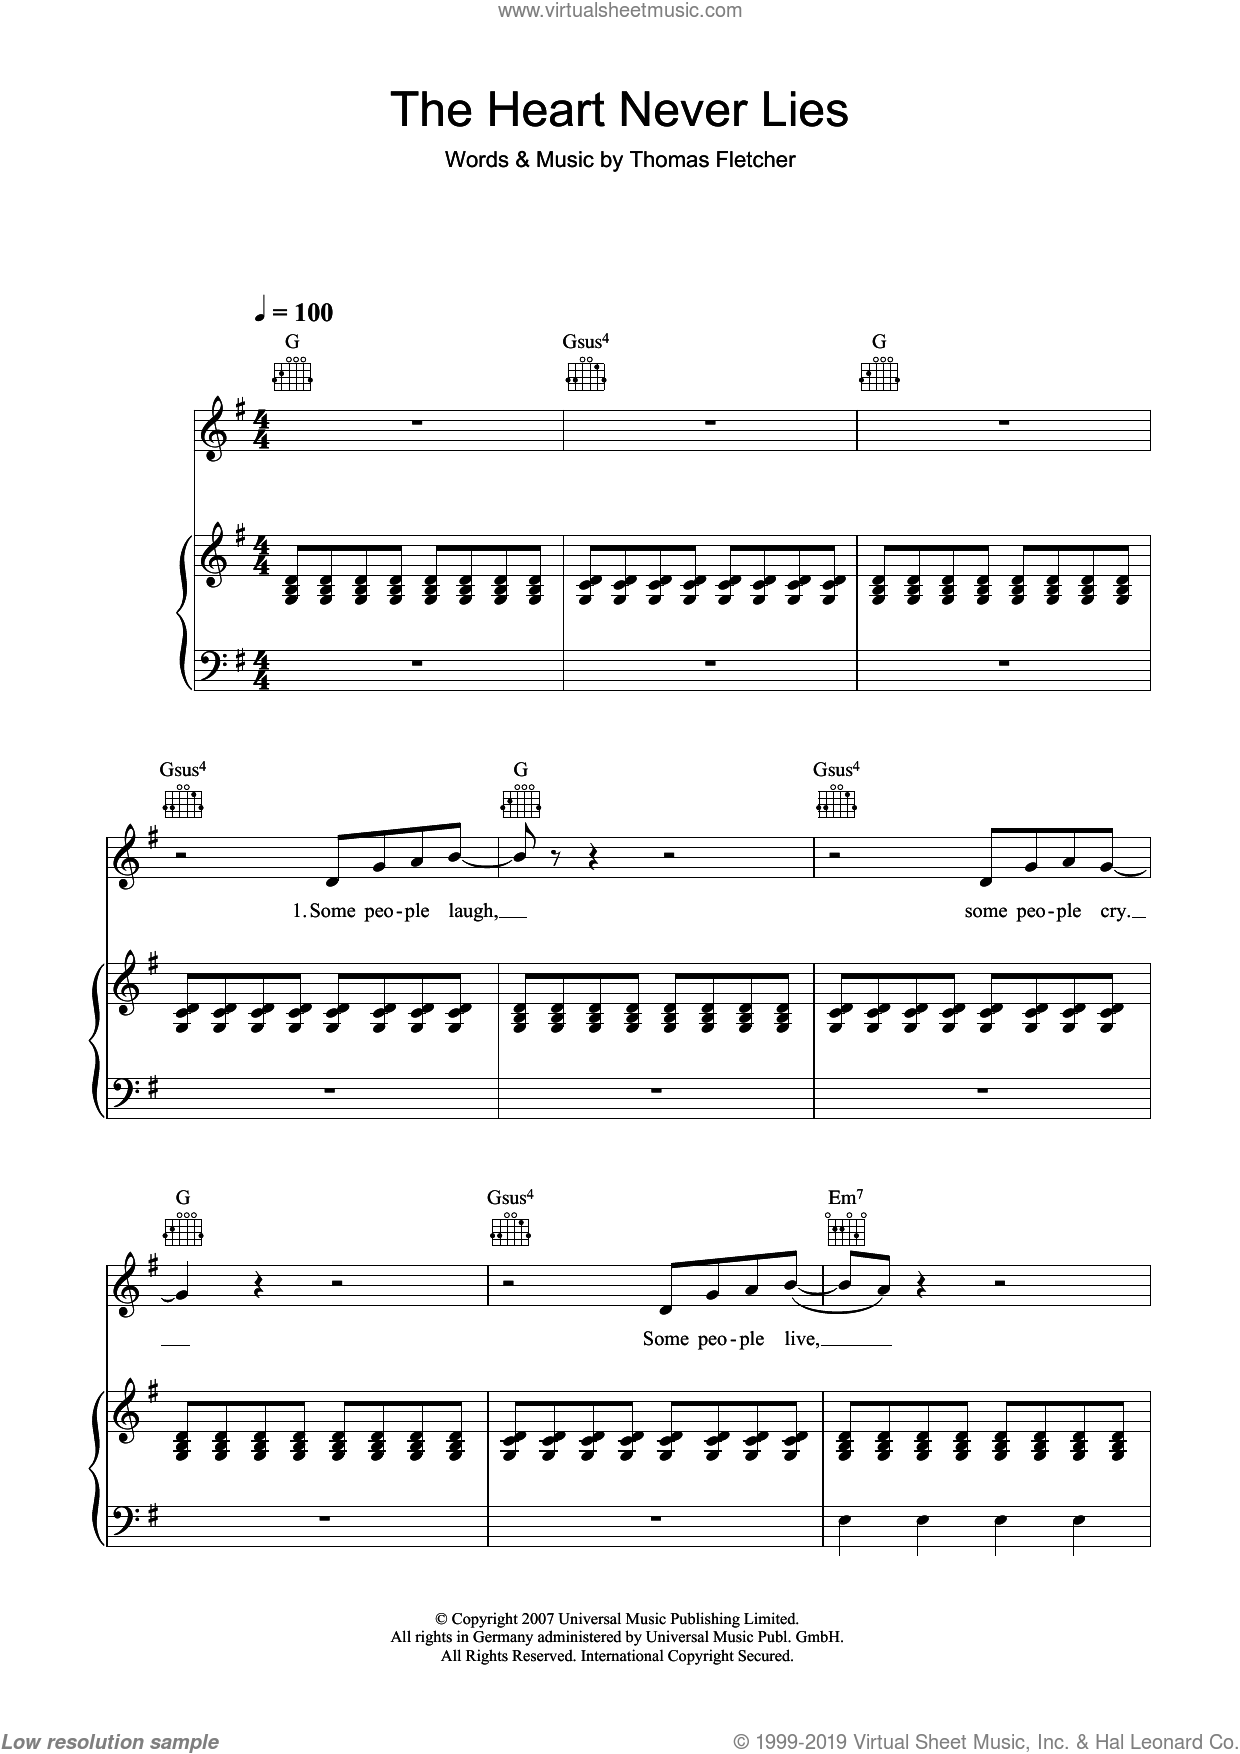 The Heart Never Lies sheet music for voice, piano or guitar by McFly and Thomas Fletcher, intermediate skill level